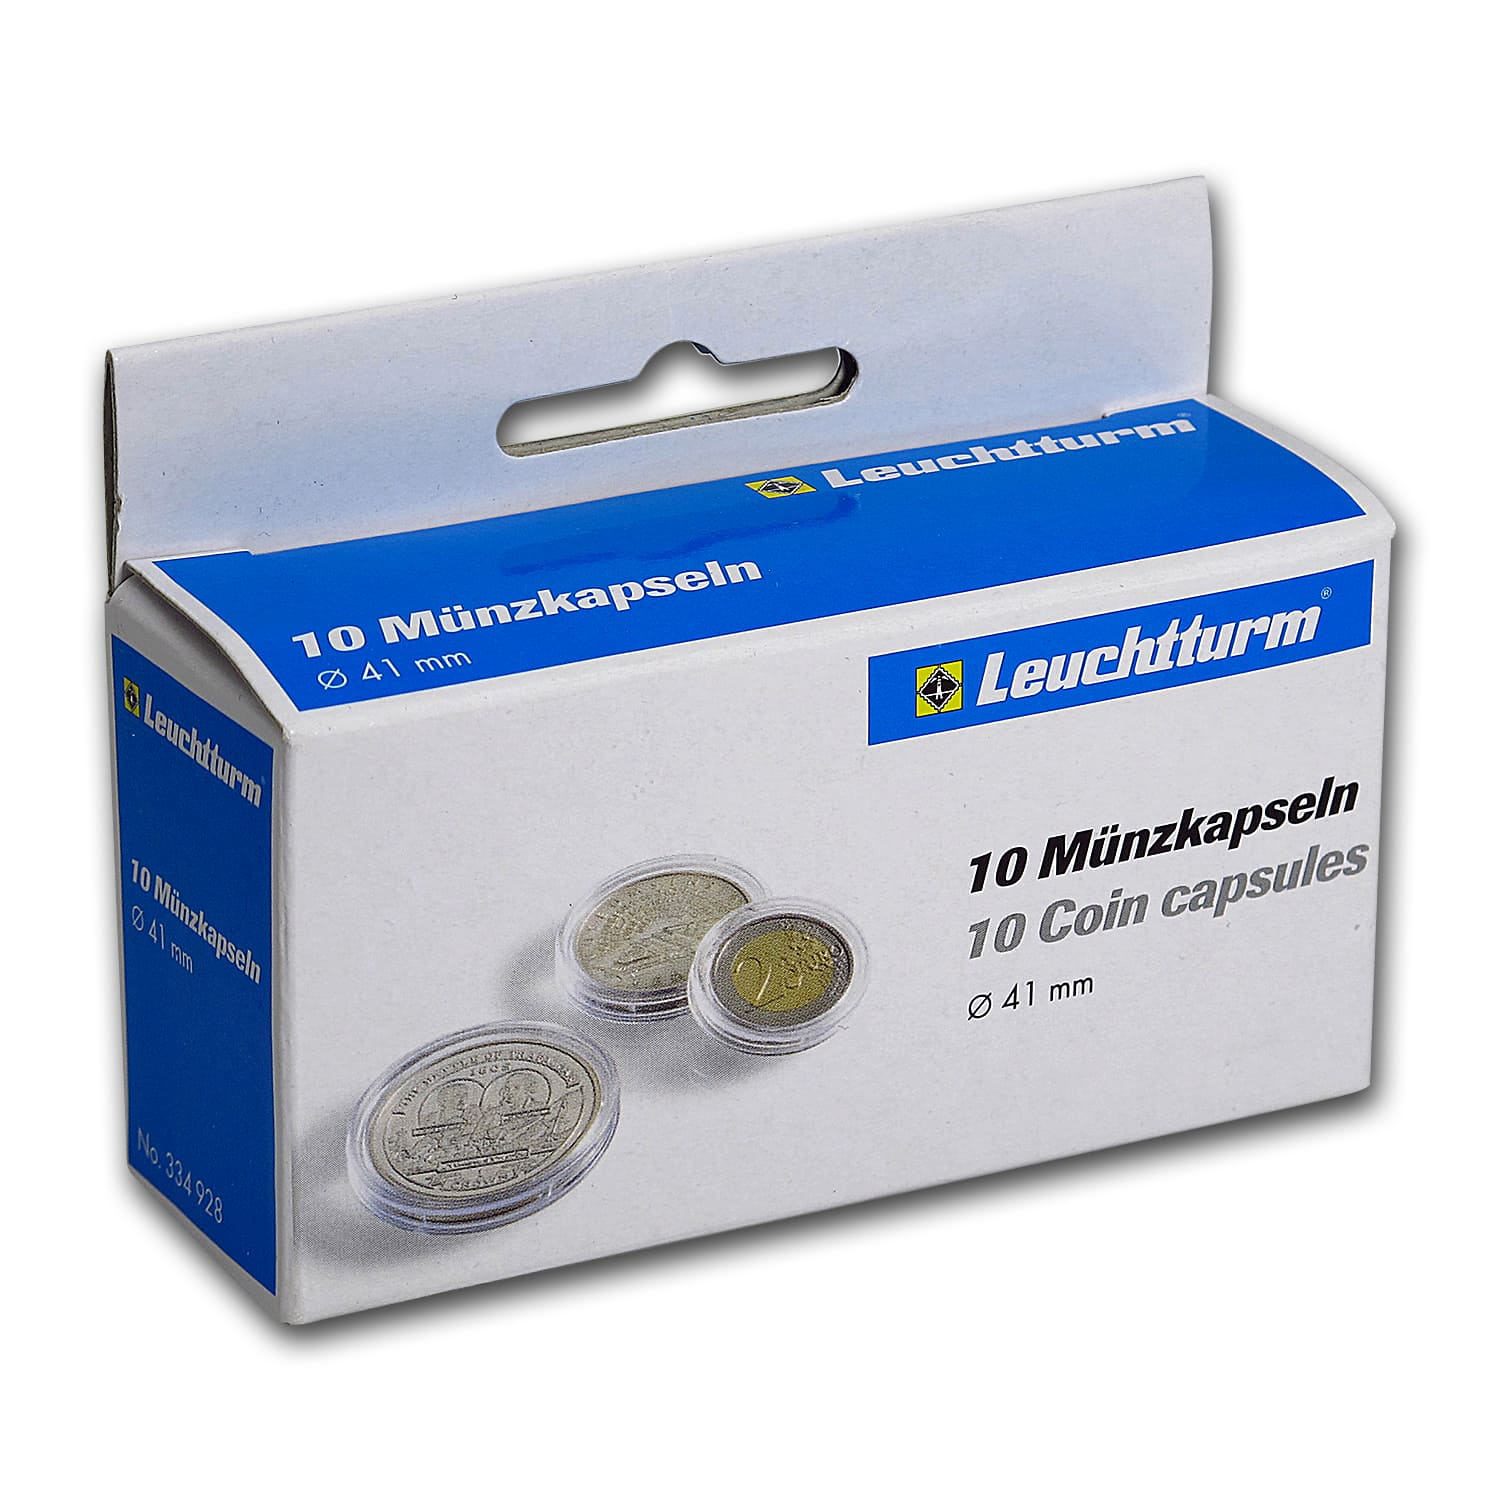 Lighthouse Capsules - 41 mm (10 count Packs)